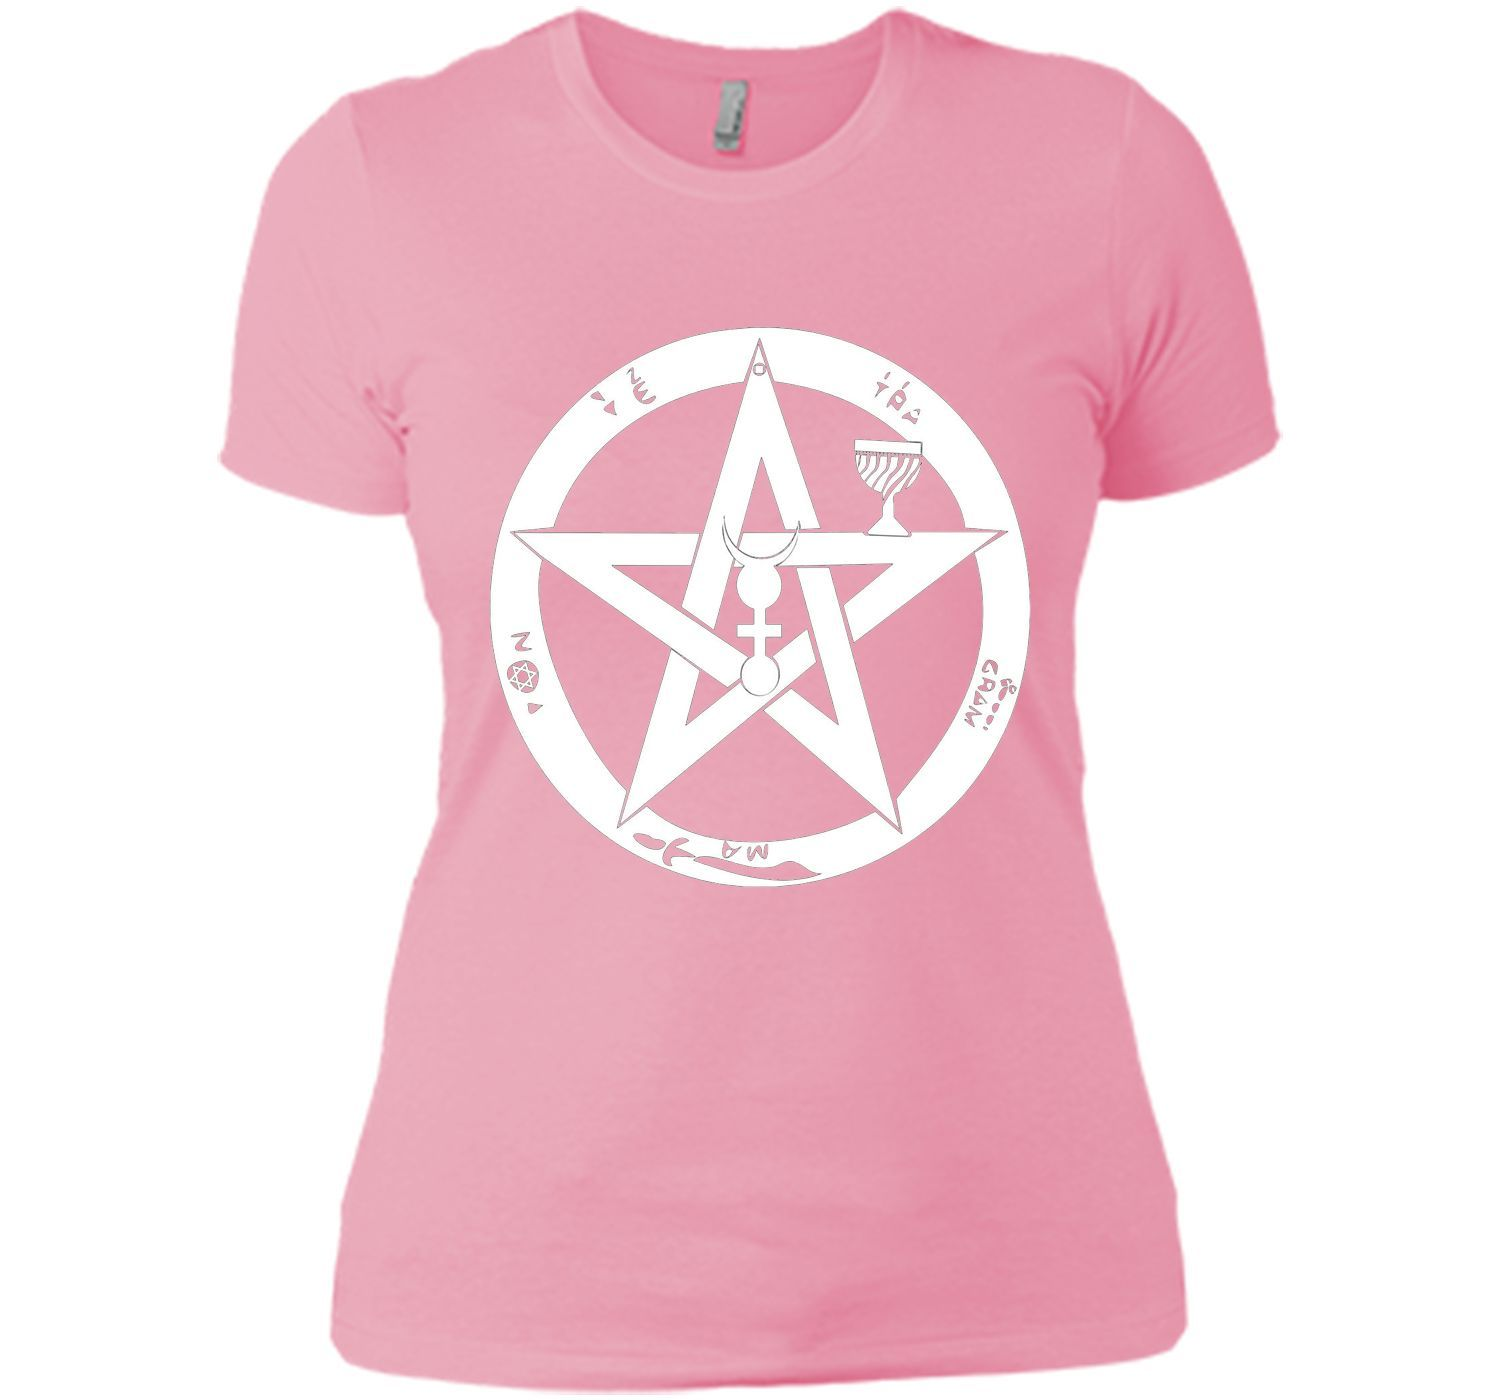 Wicca protection symbol t shirt wiccan pentagram pagan tee symbols wicca protection symbol t shirt wiccan pentagram pagan tee buycottarizona Choice Image